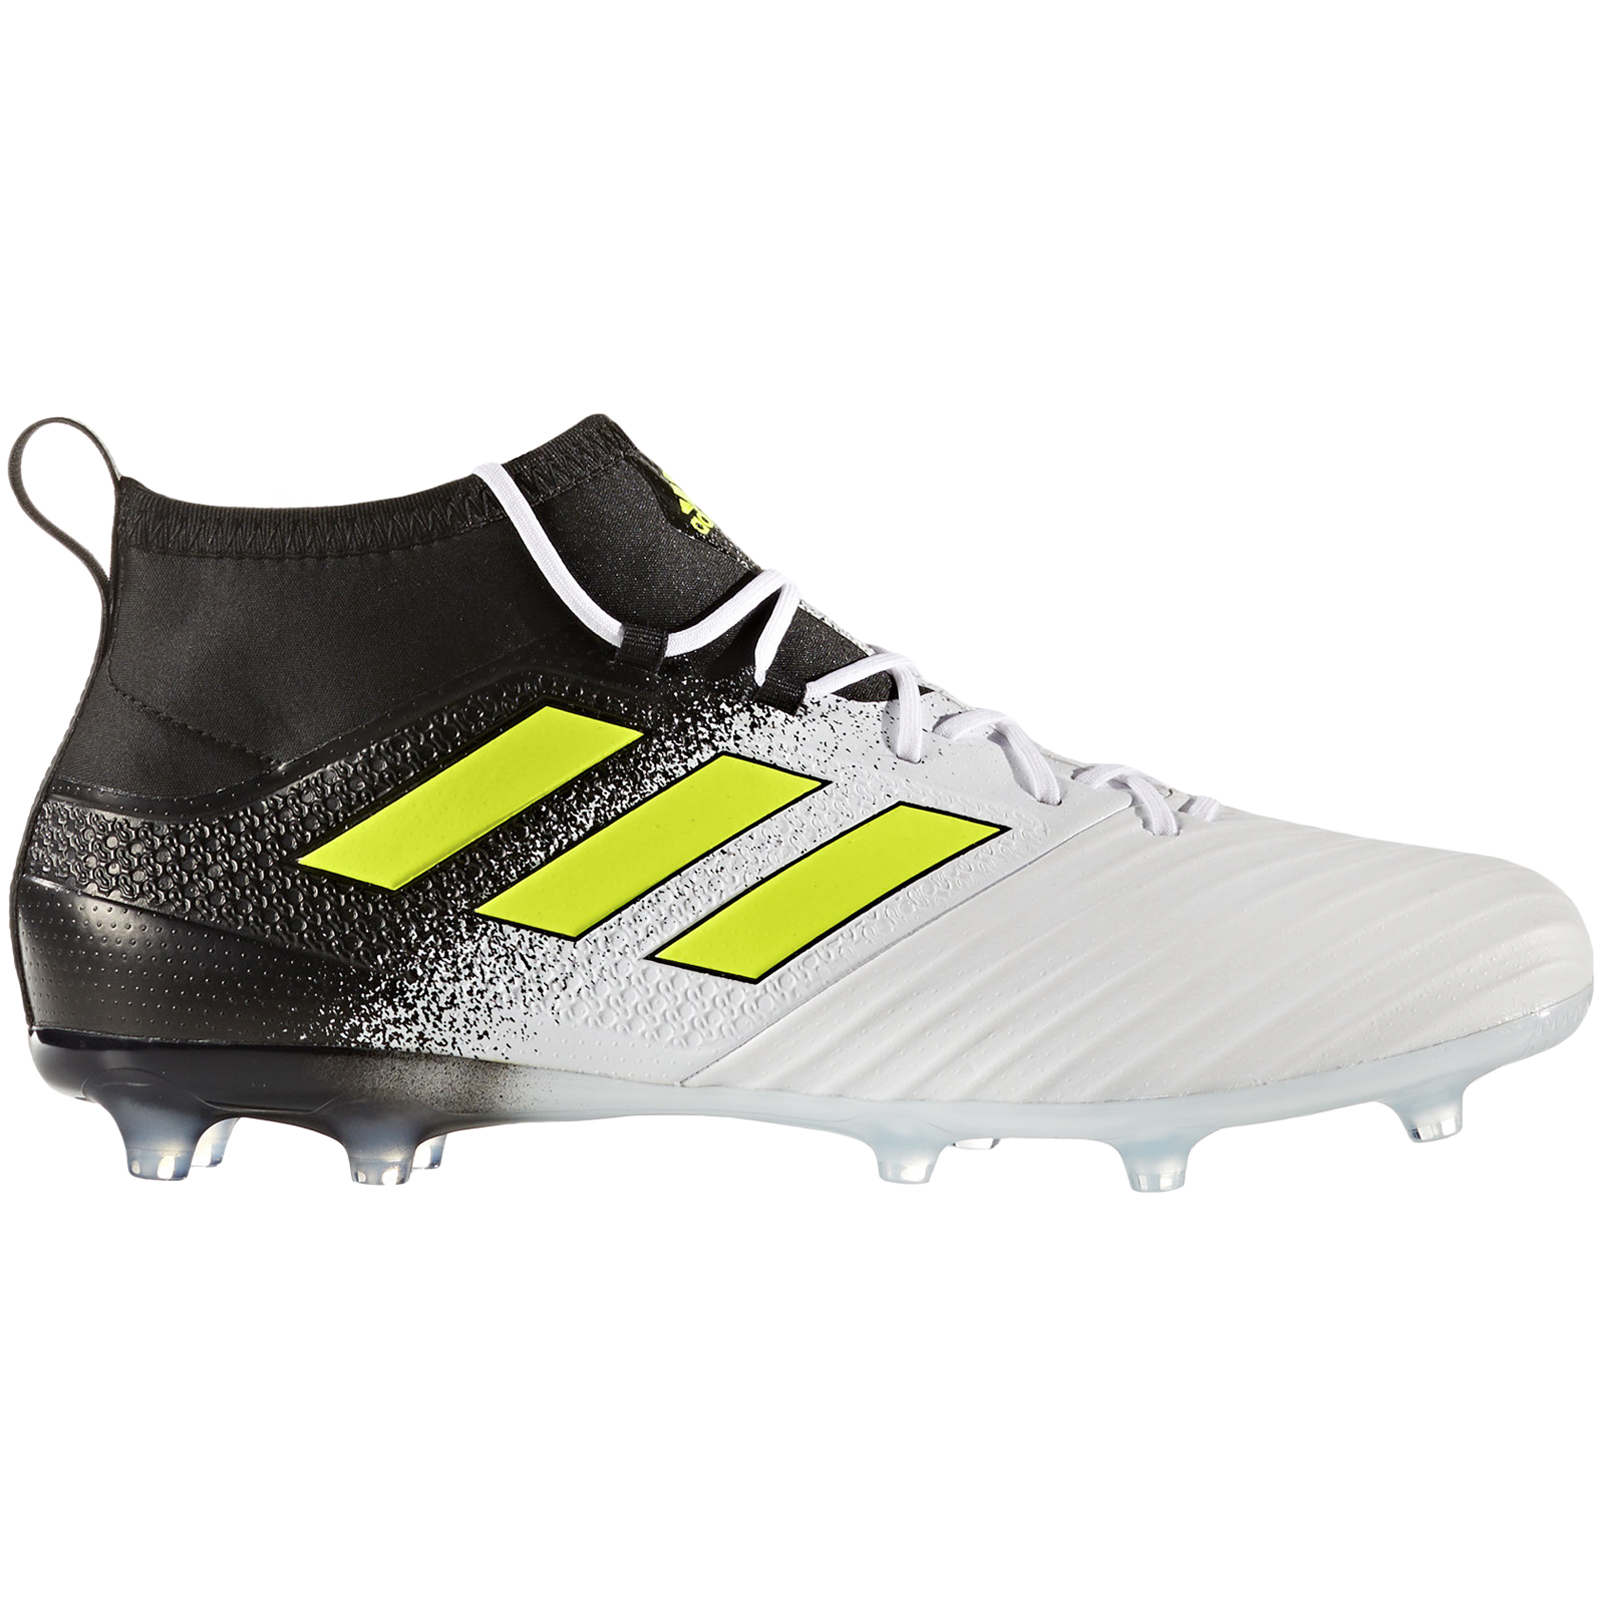 Details about adidas Performance Mens Ace 17.2 FG Soccer Firm Ground Sports  Boots - White 08671b92130